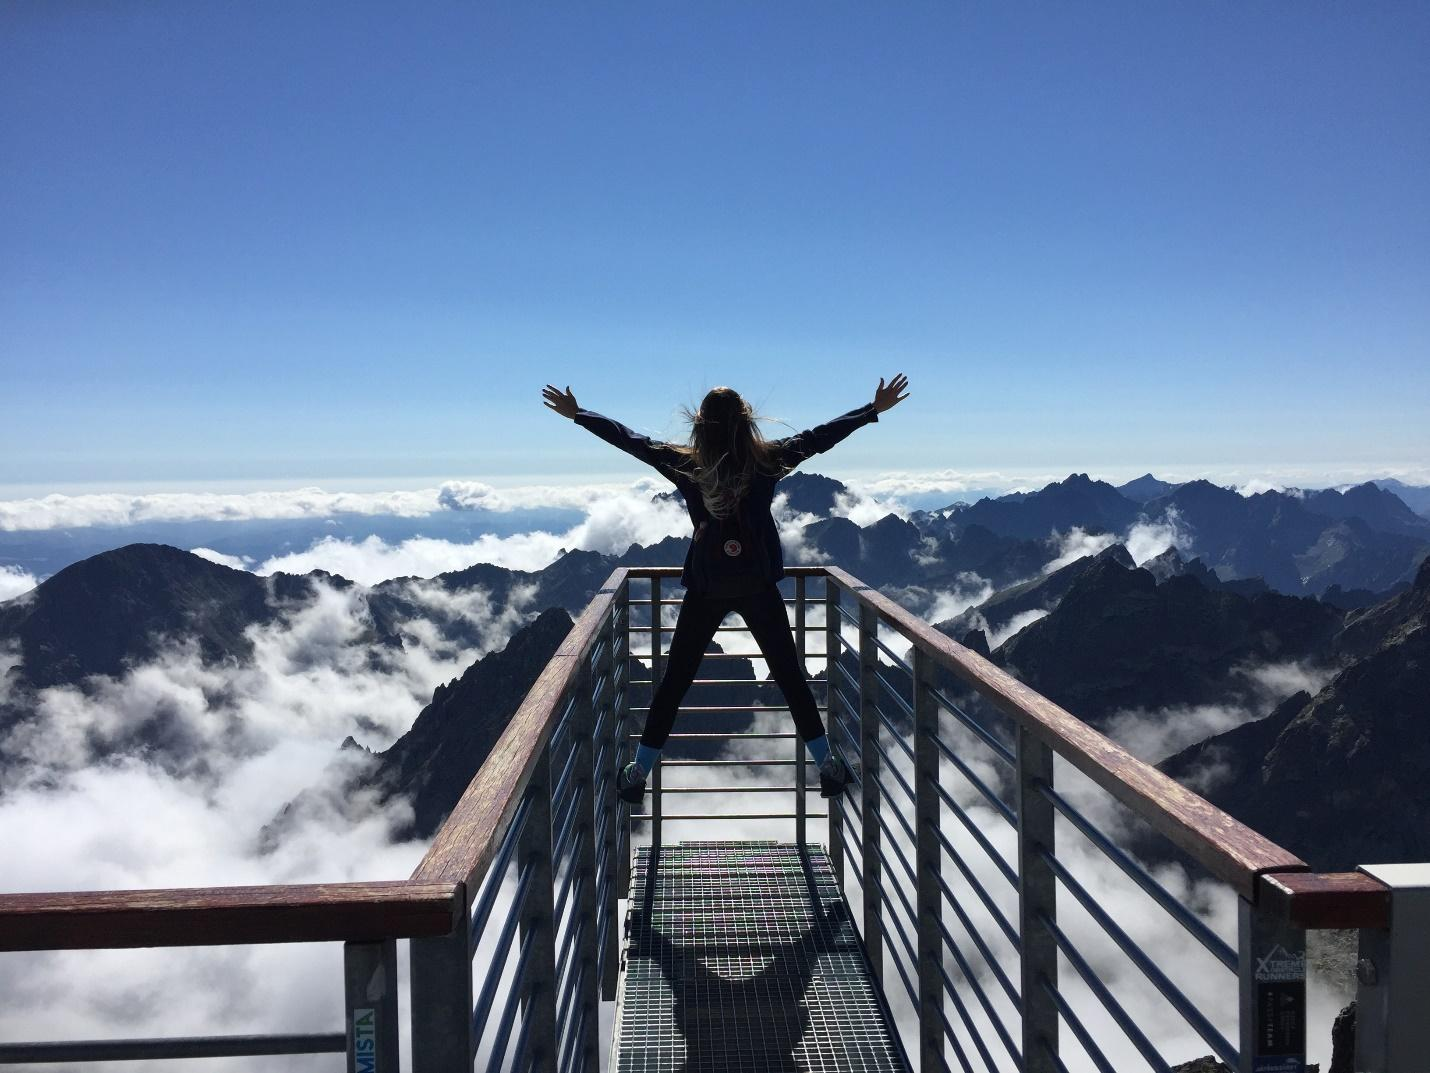 SaaS customer success at the top of the world